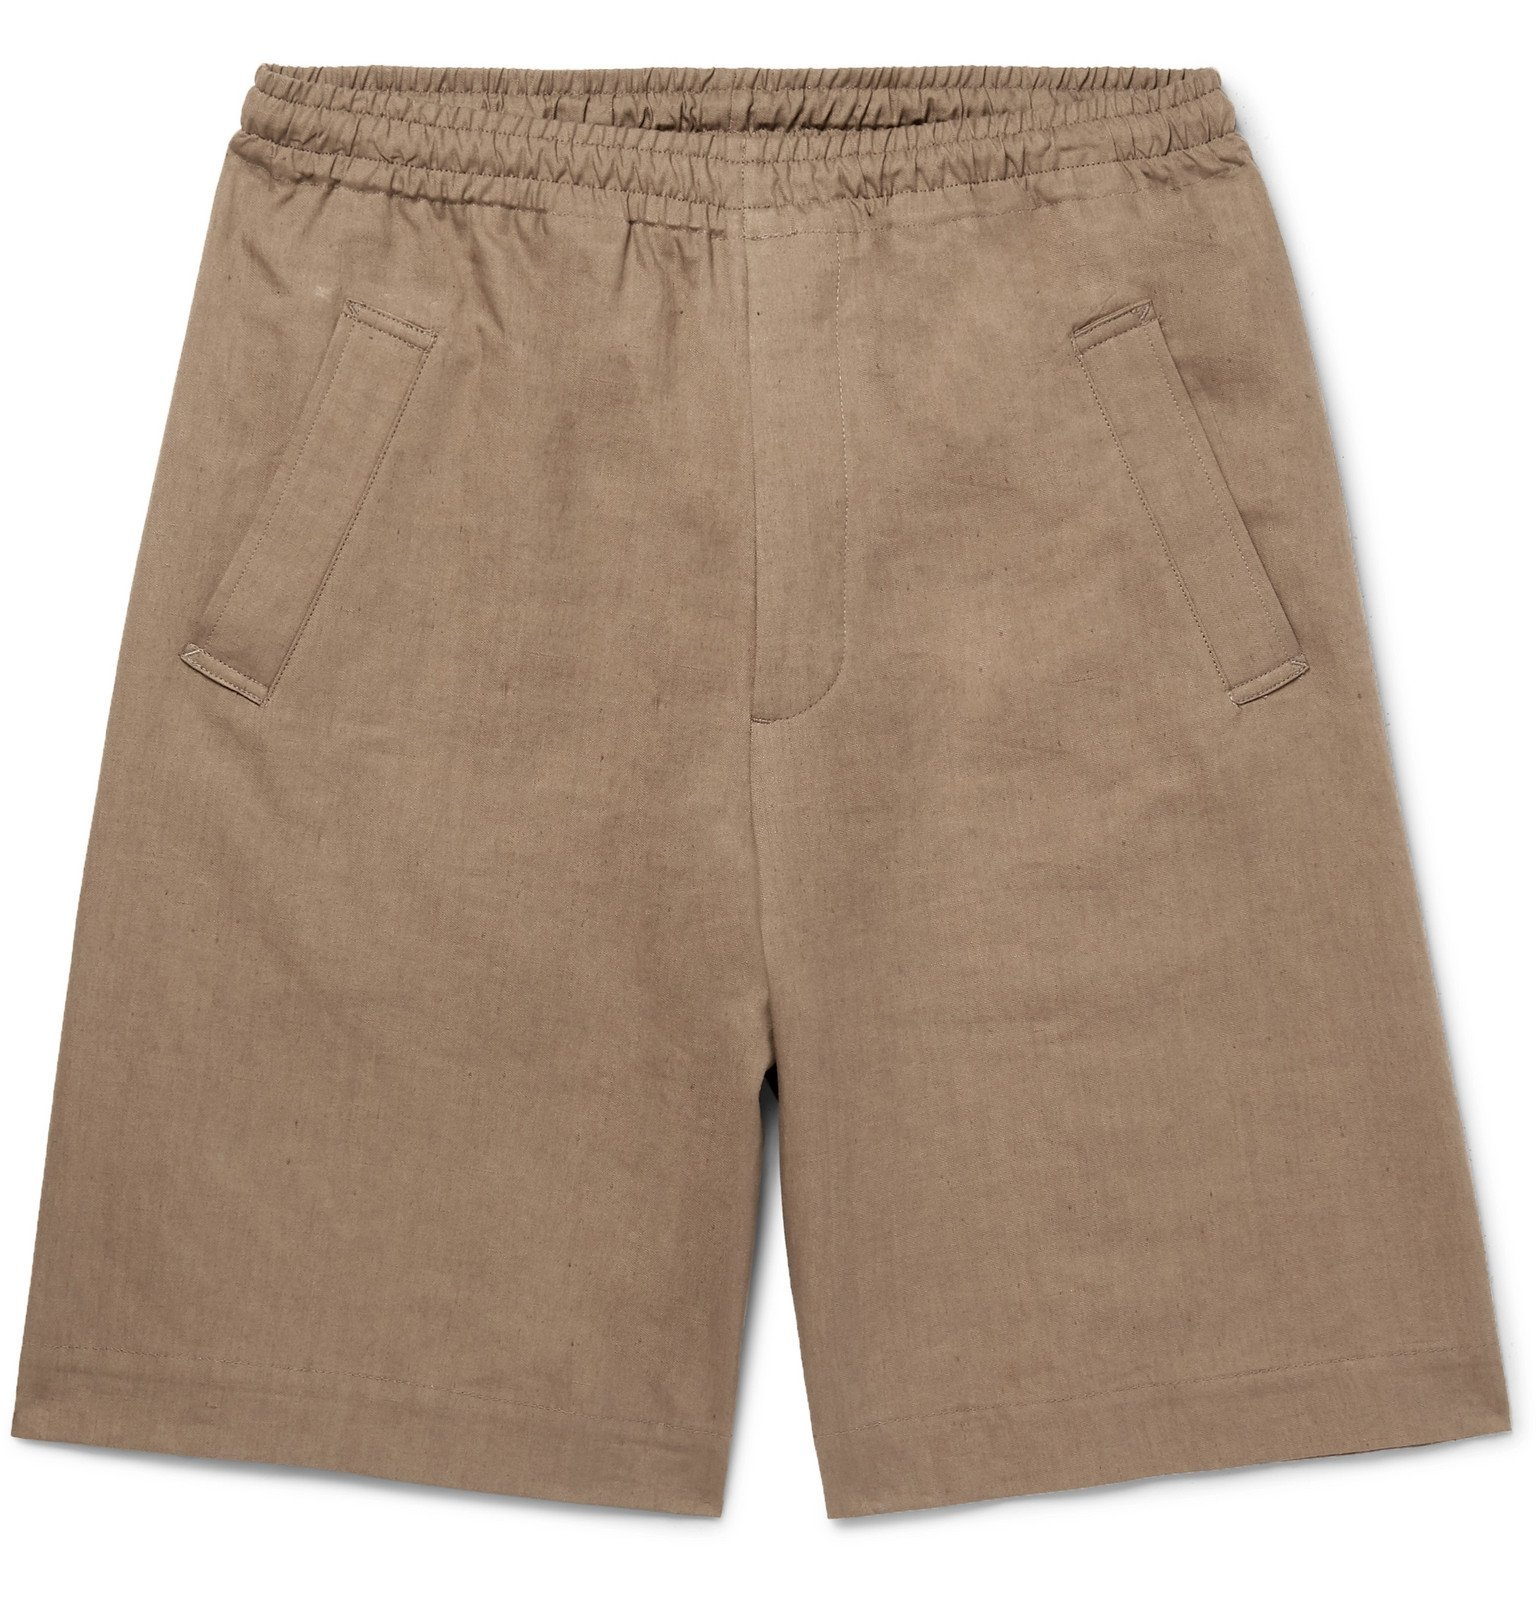 Margaret Howell - Linen and Cotton-Blend Twill Drawstring Shorts - Neutrals